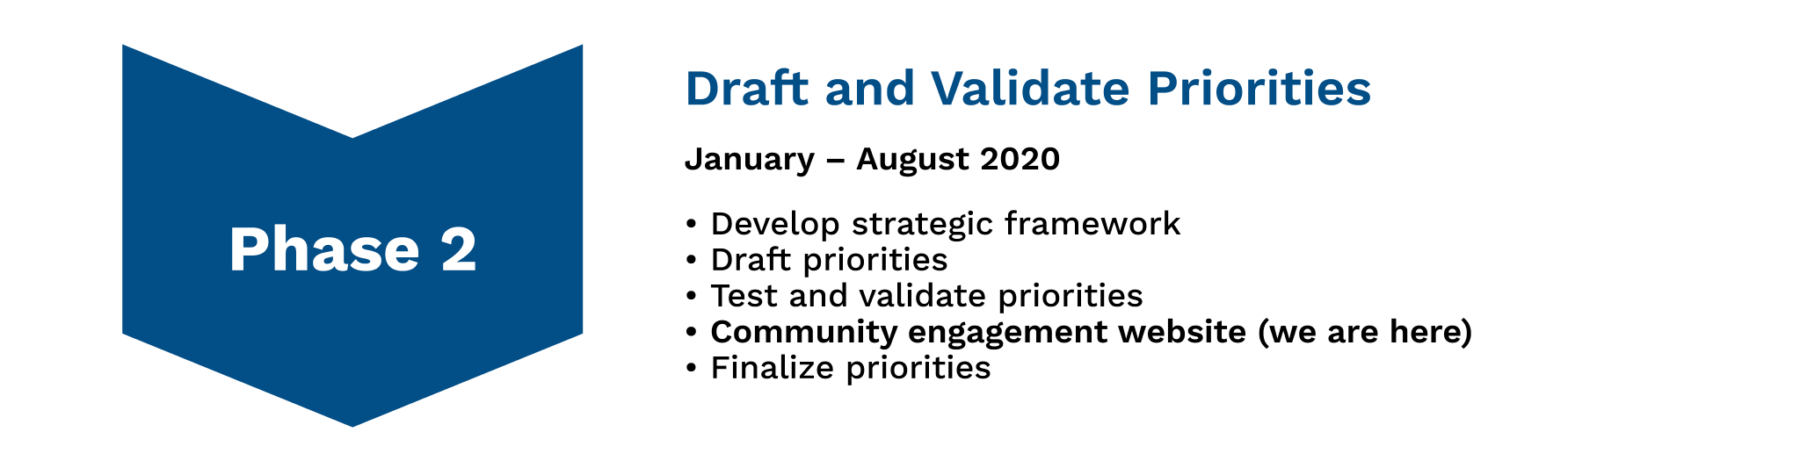 Image depicts a chevron labeled Phase 2 Heading: Draft and Validate Priorities  Subheading: January – August 2020 Body: Develop strategic framework draft priorities test and validate priorities community engagement website (we are here)  finalize priorities